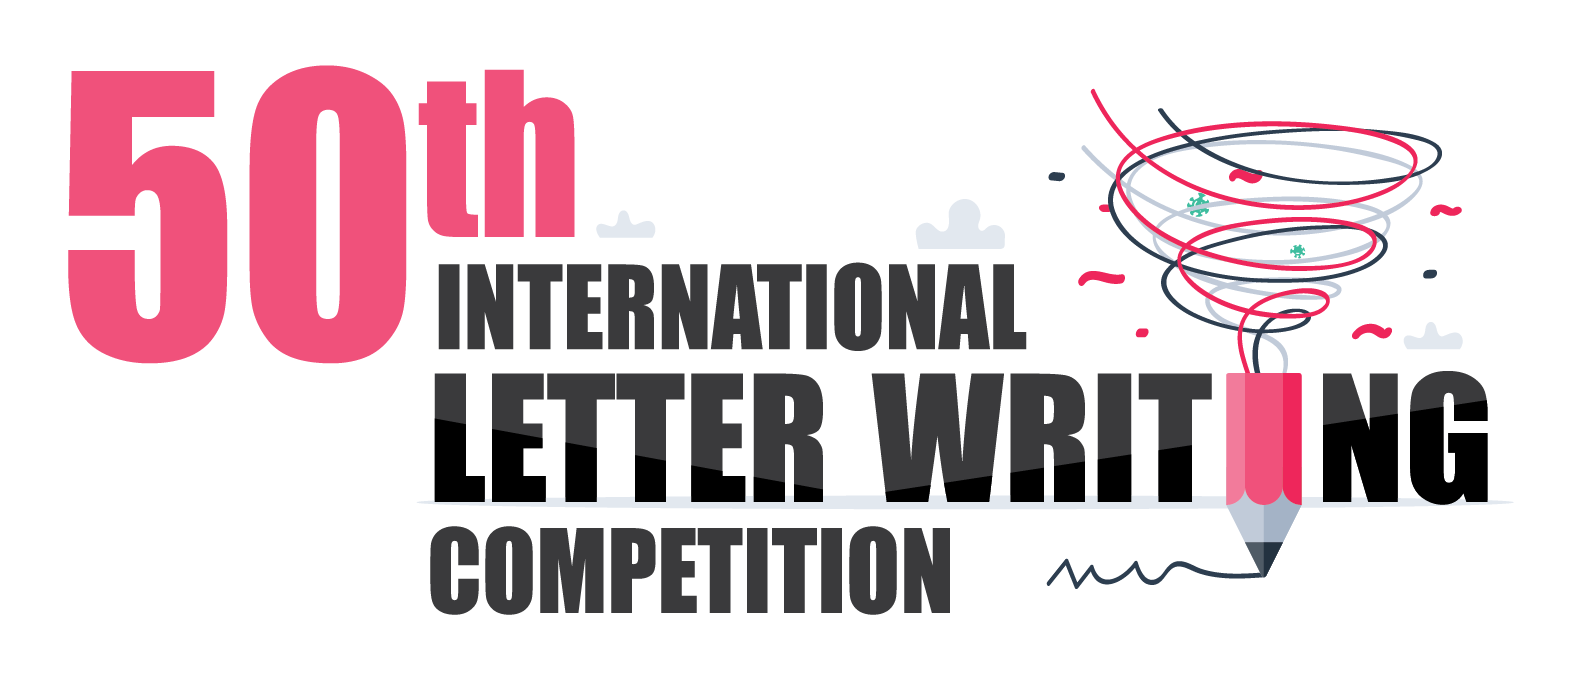 International Letter Writing Competition for Young People 2021 by UPU [Prizes Upto Rs. 1.25L]: Submit by Apr 5